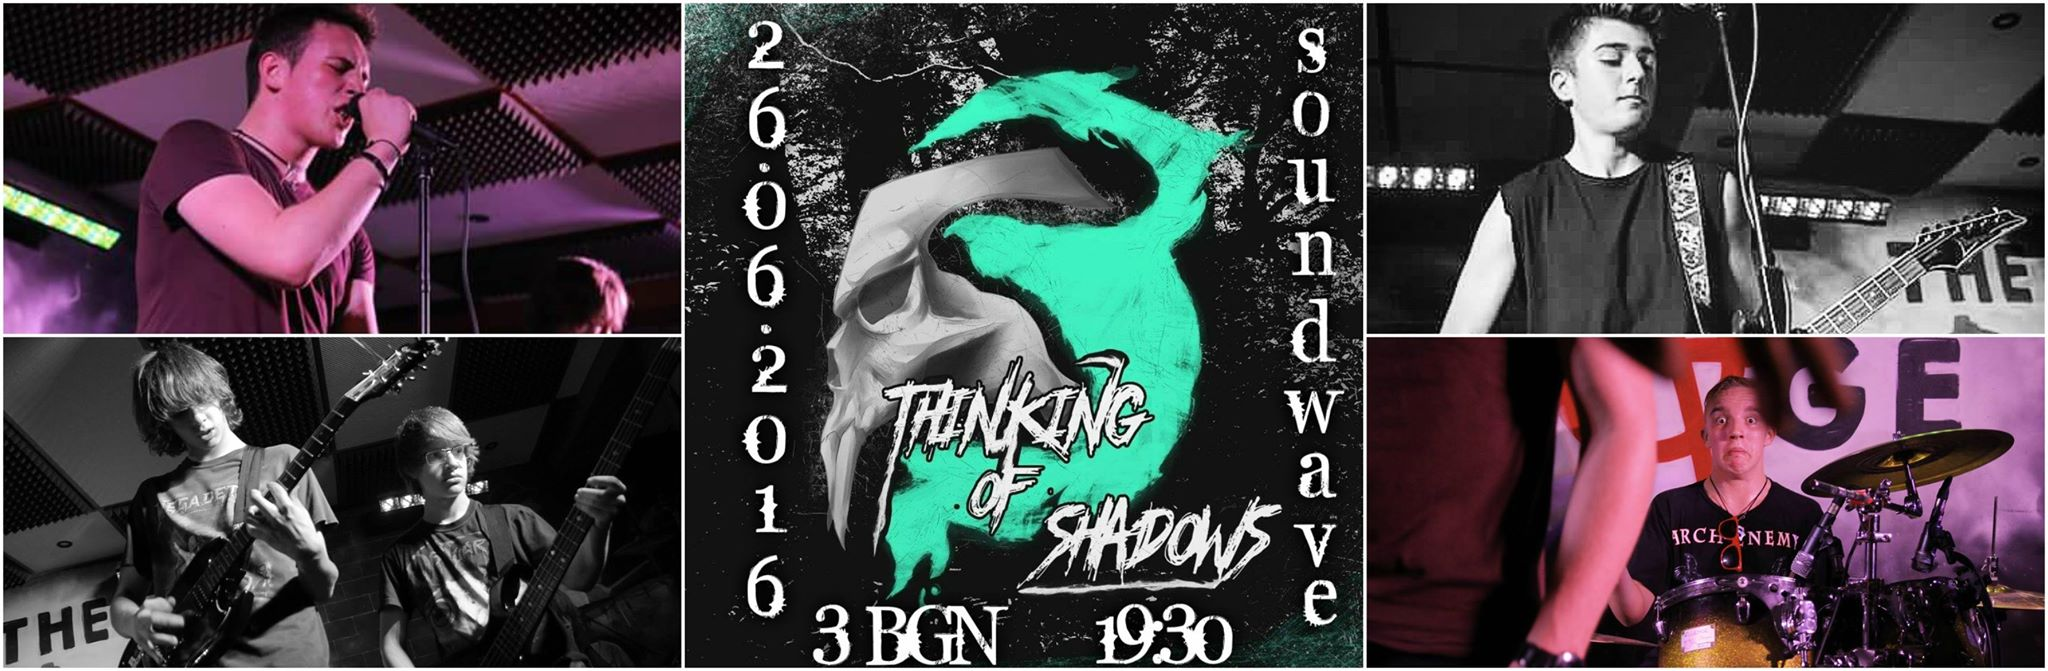 Thinking of Shadows @Soundwave June 26